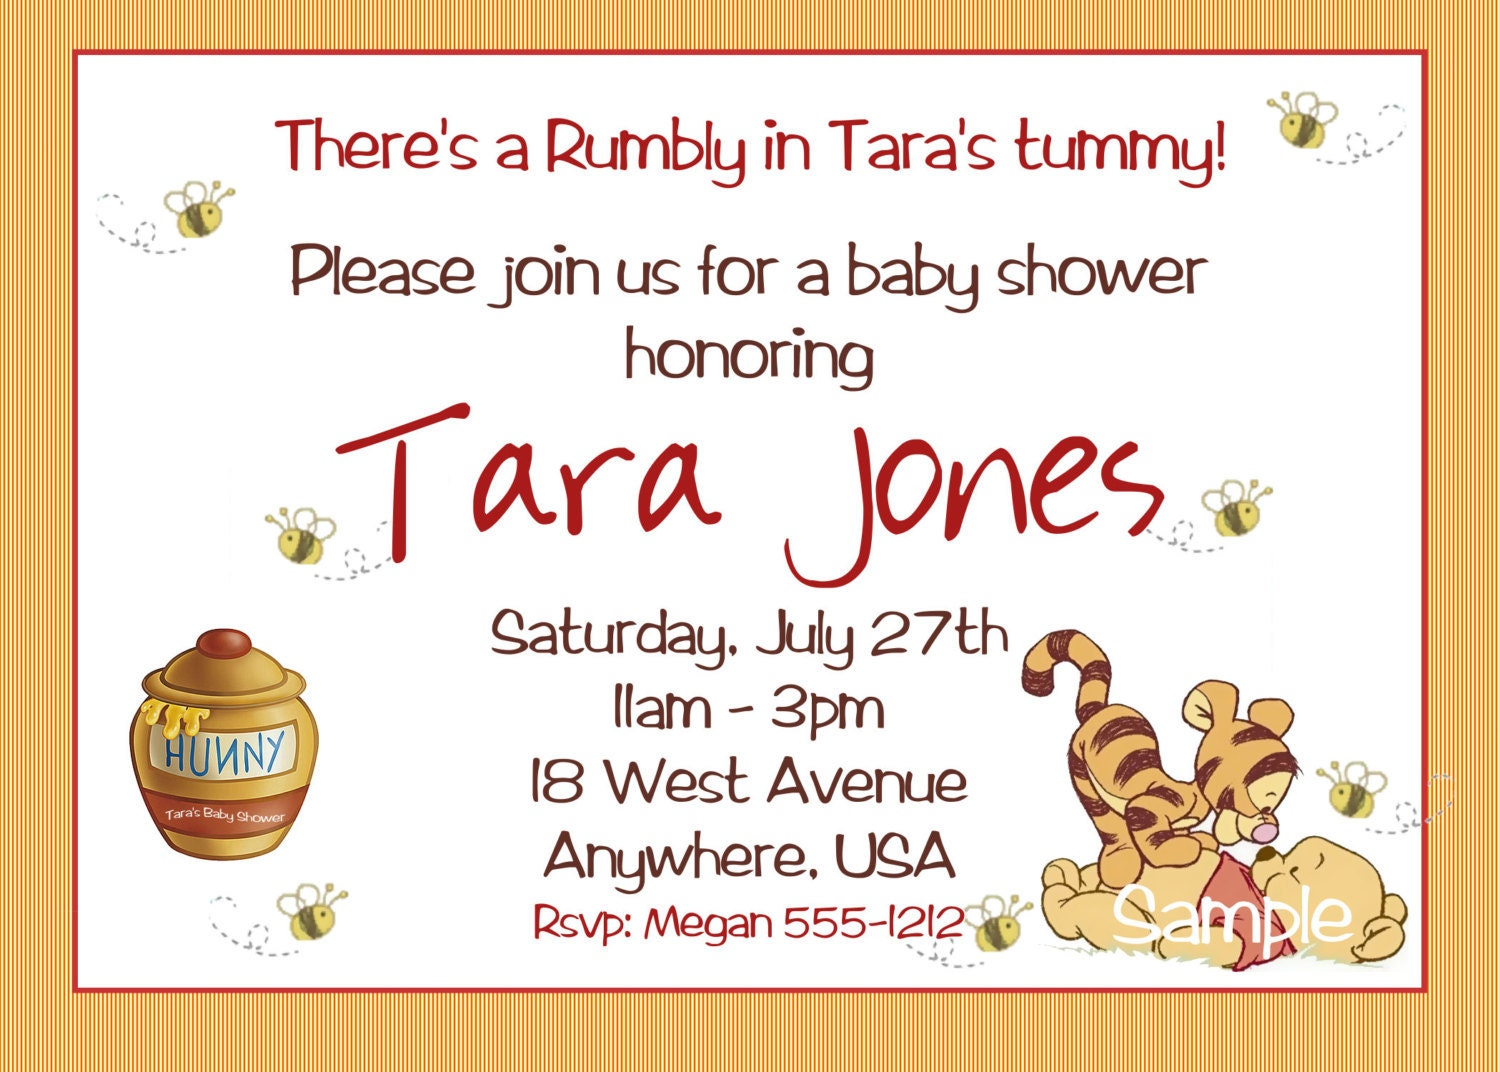 winnie the pooh birthday | etsy, Baby shower invitations